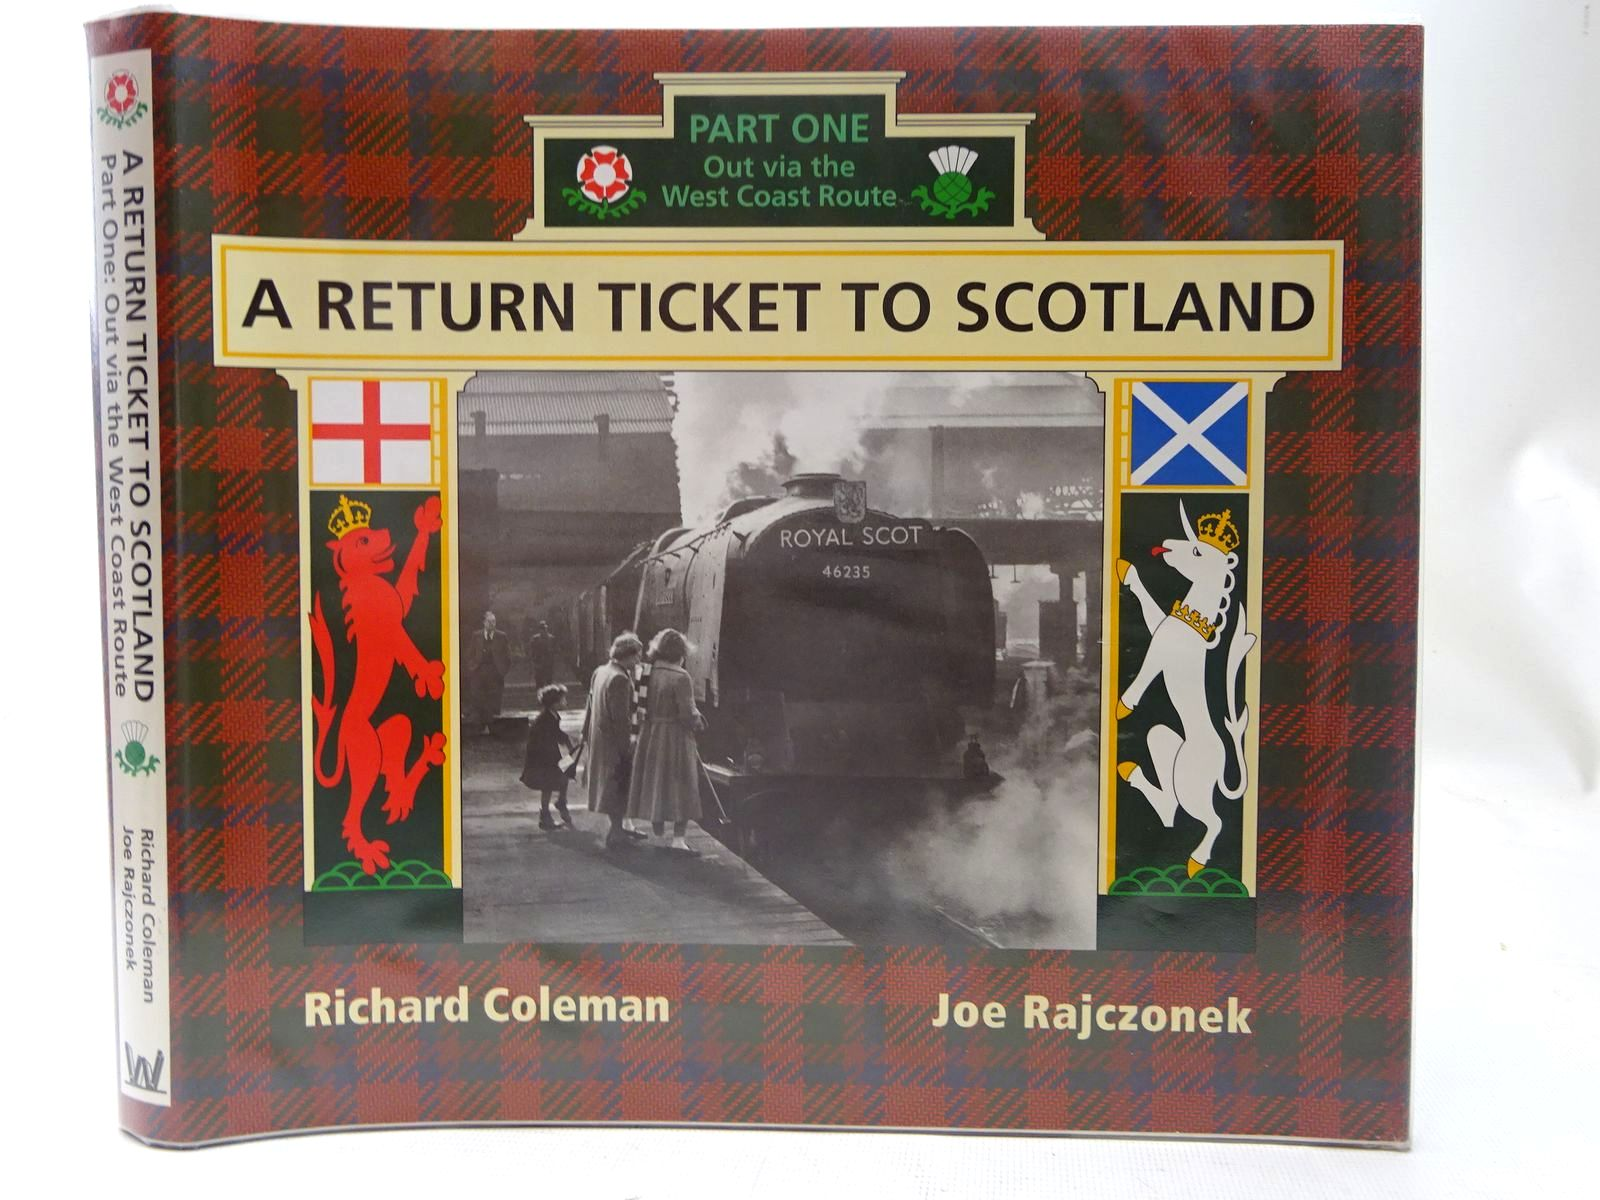 Photo of A RETURN TICKET TO SCOTLAND PART ONE written by Coleman, Richard<br />Rajczonek, Joe published by W.D. Wharton (STOCK CODE: 2126742)  for sale by Stella & Rose's Books